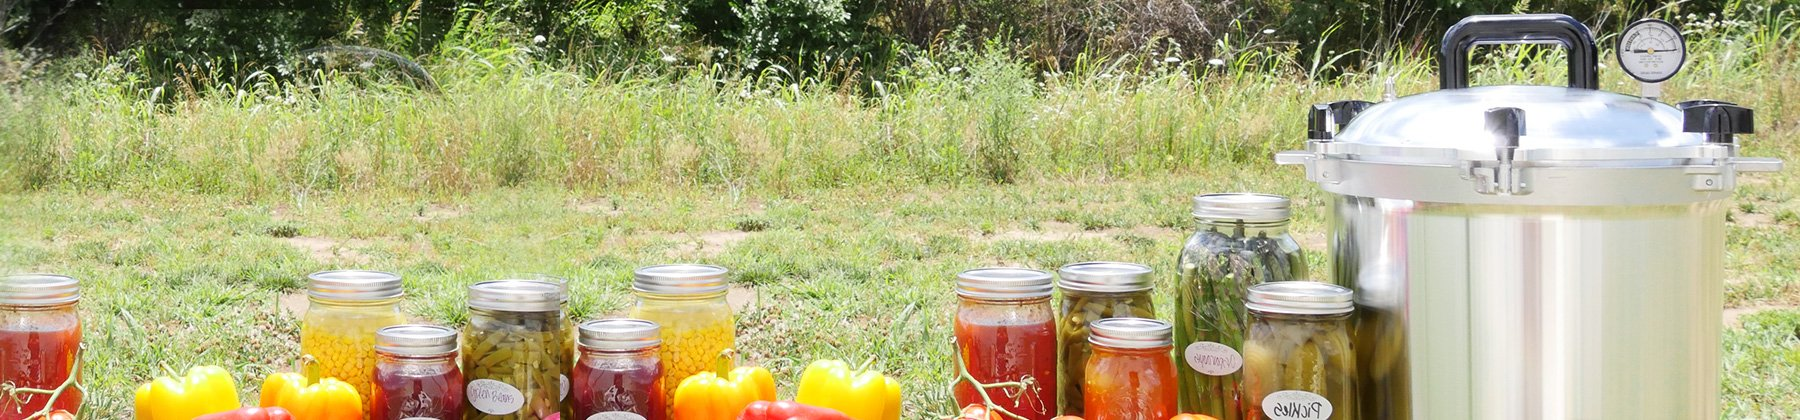 Photo of canning with All American Canner